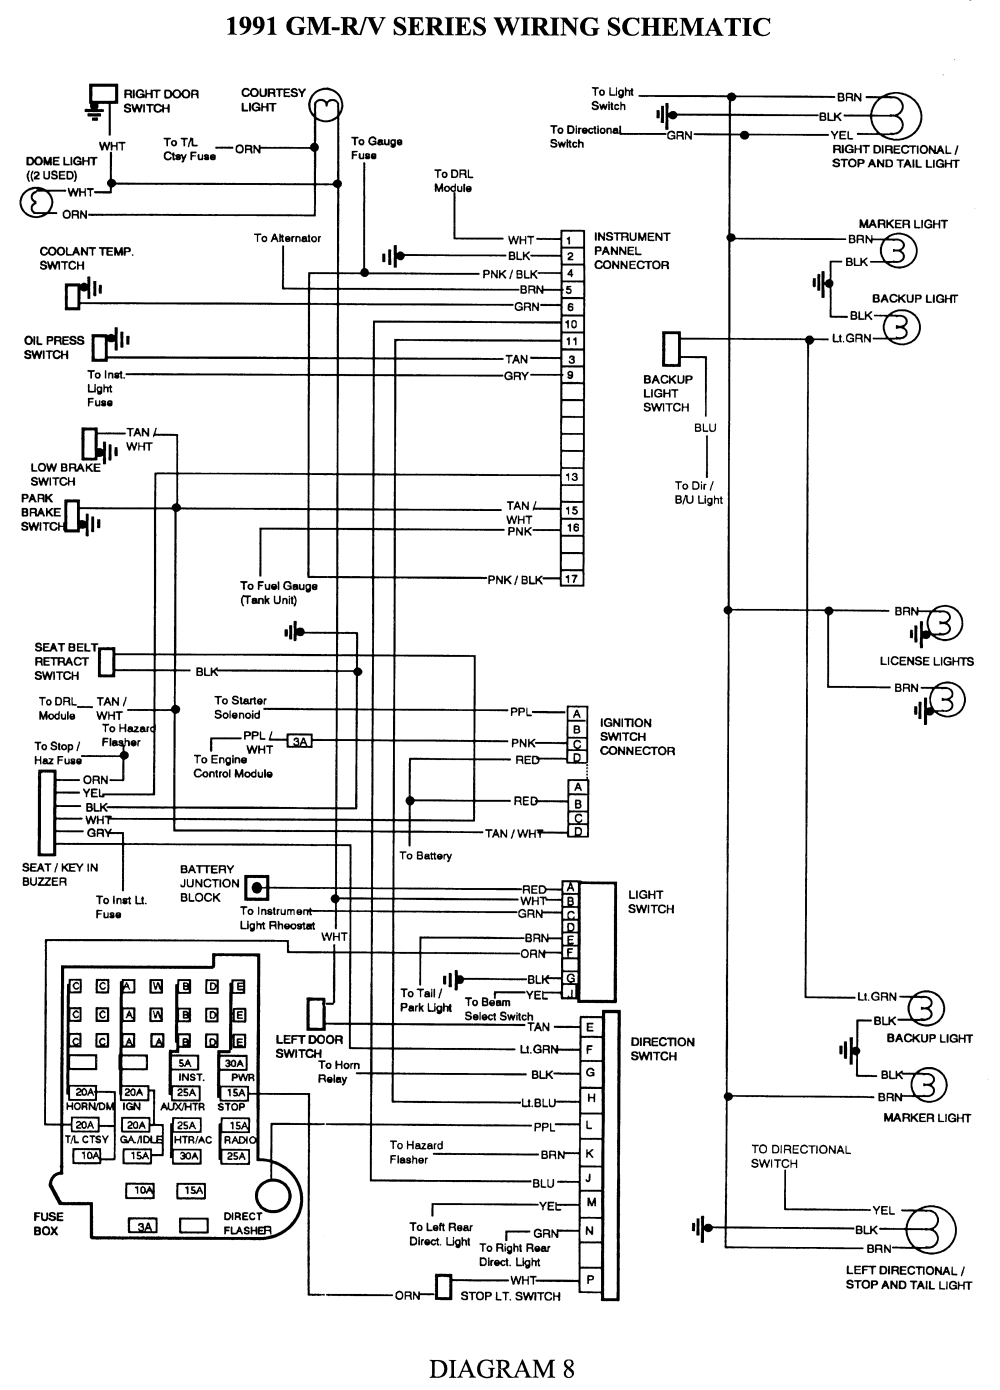 DIAGRAM] 85 Blazer Wiring Diagram FULL Version HD Quality Wiring Diagram -  LSGMWIRING.PFTC.FRpftc